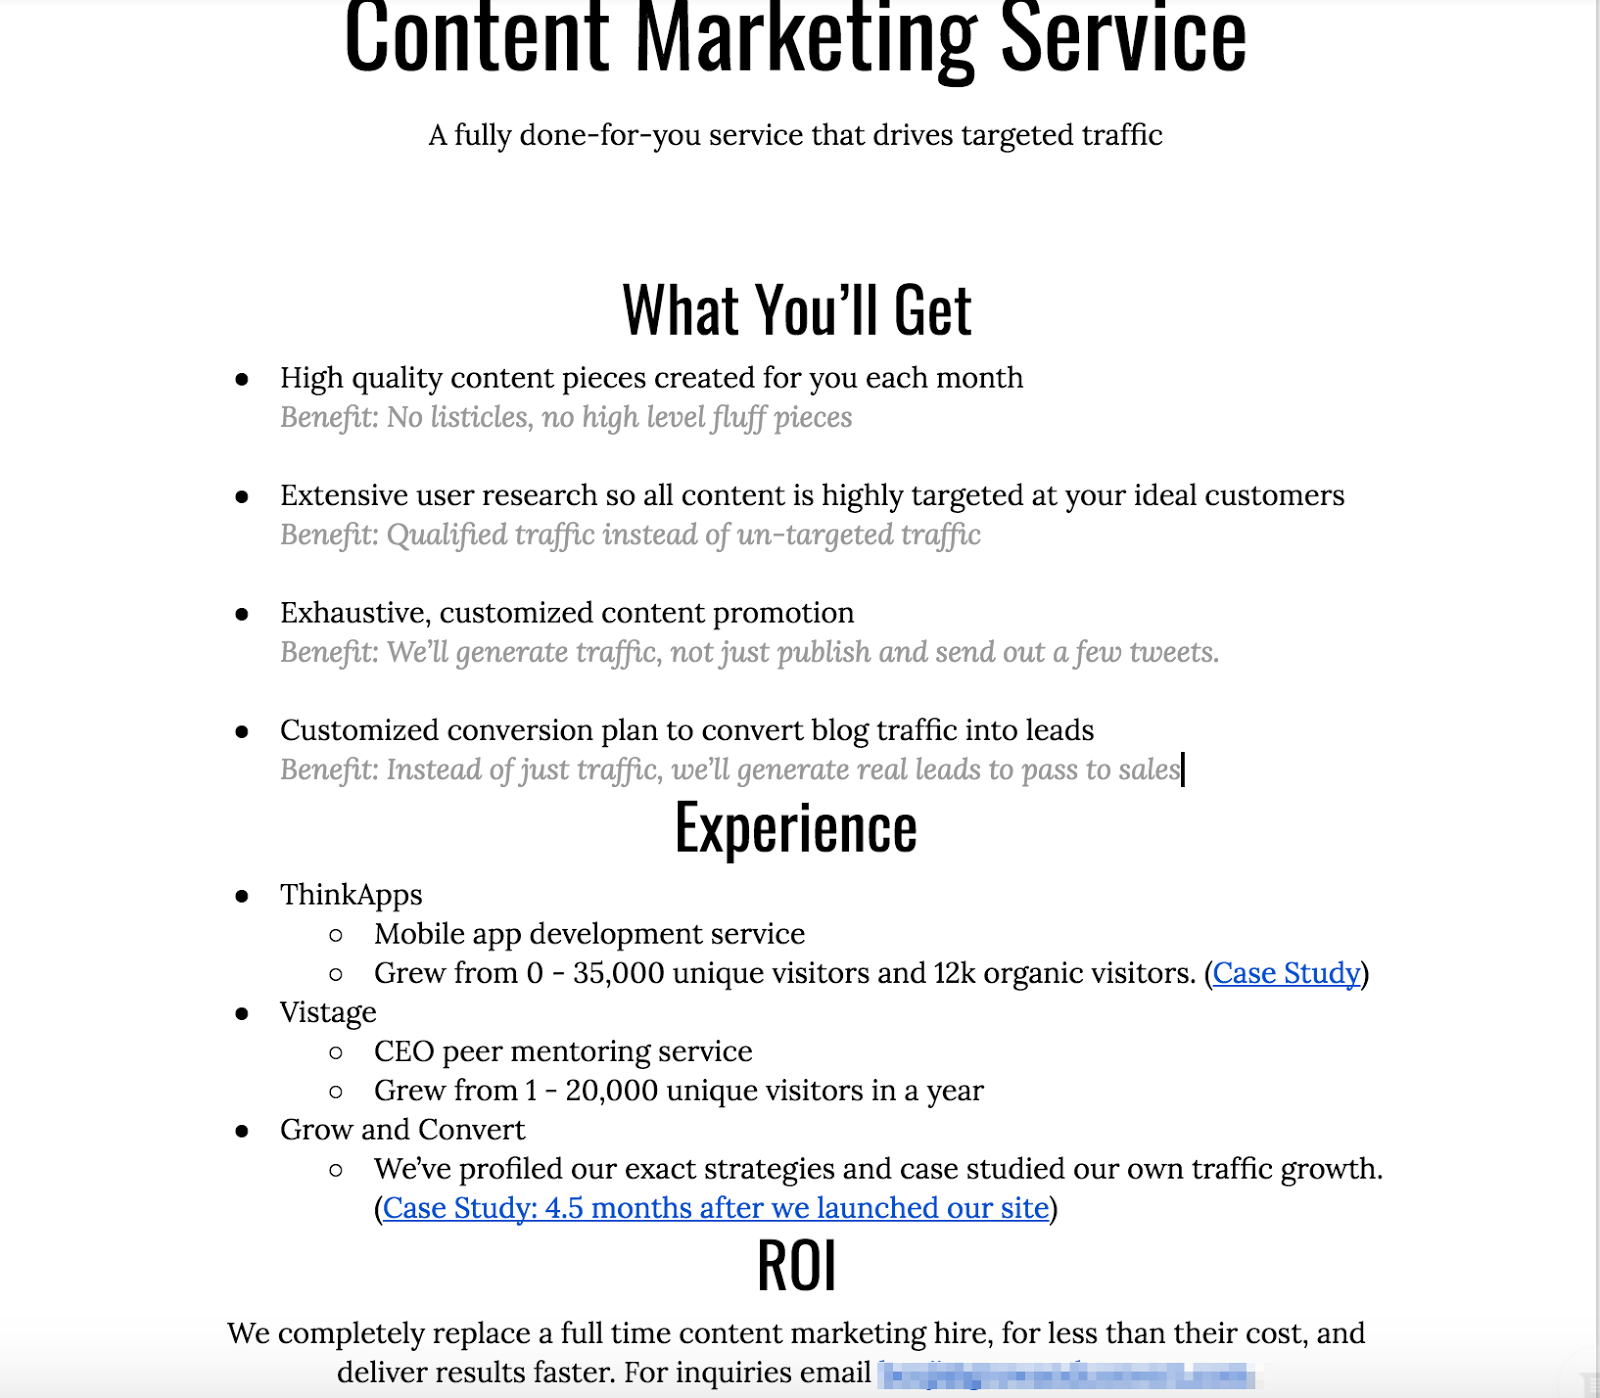 Content Marketing Done For You by Grow and Convert Google Docs